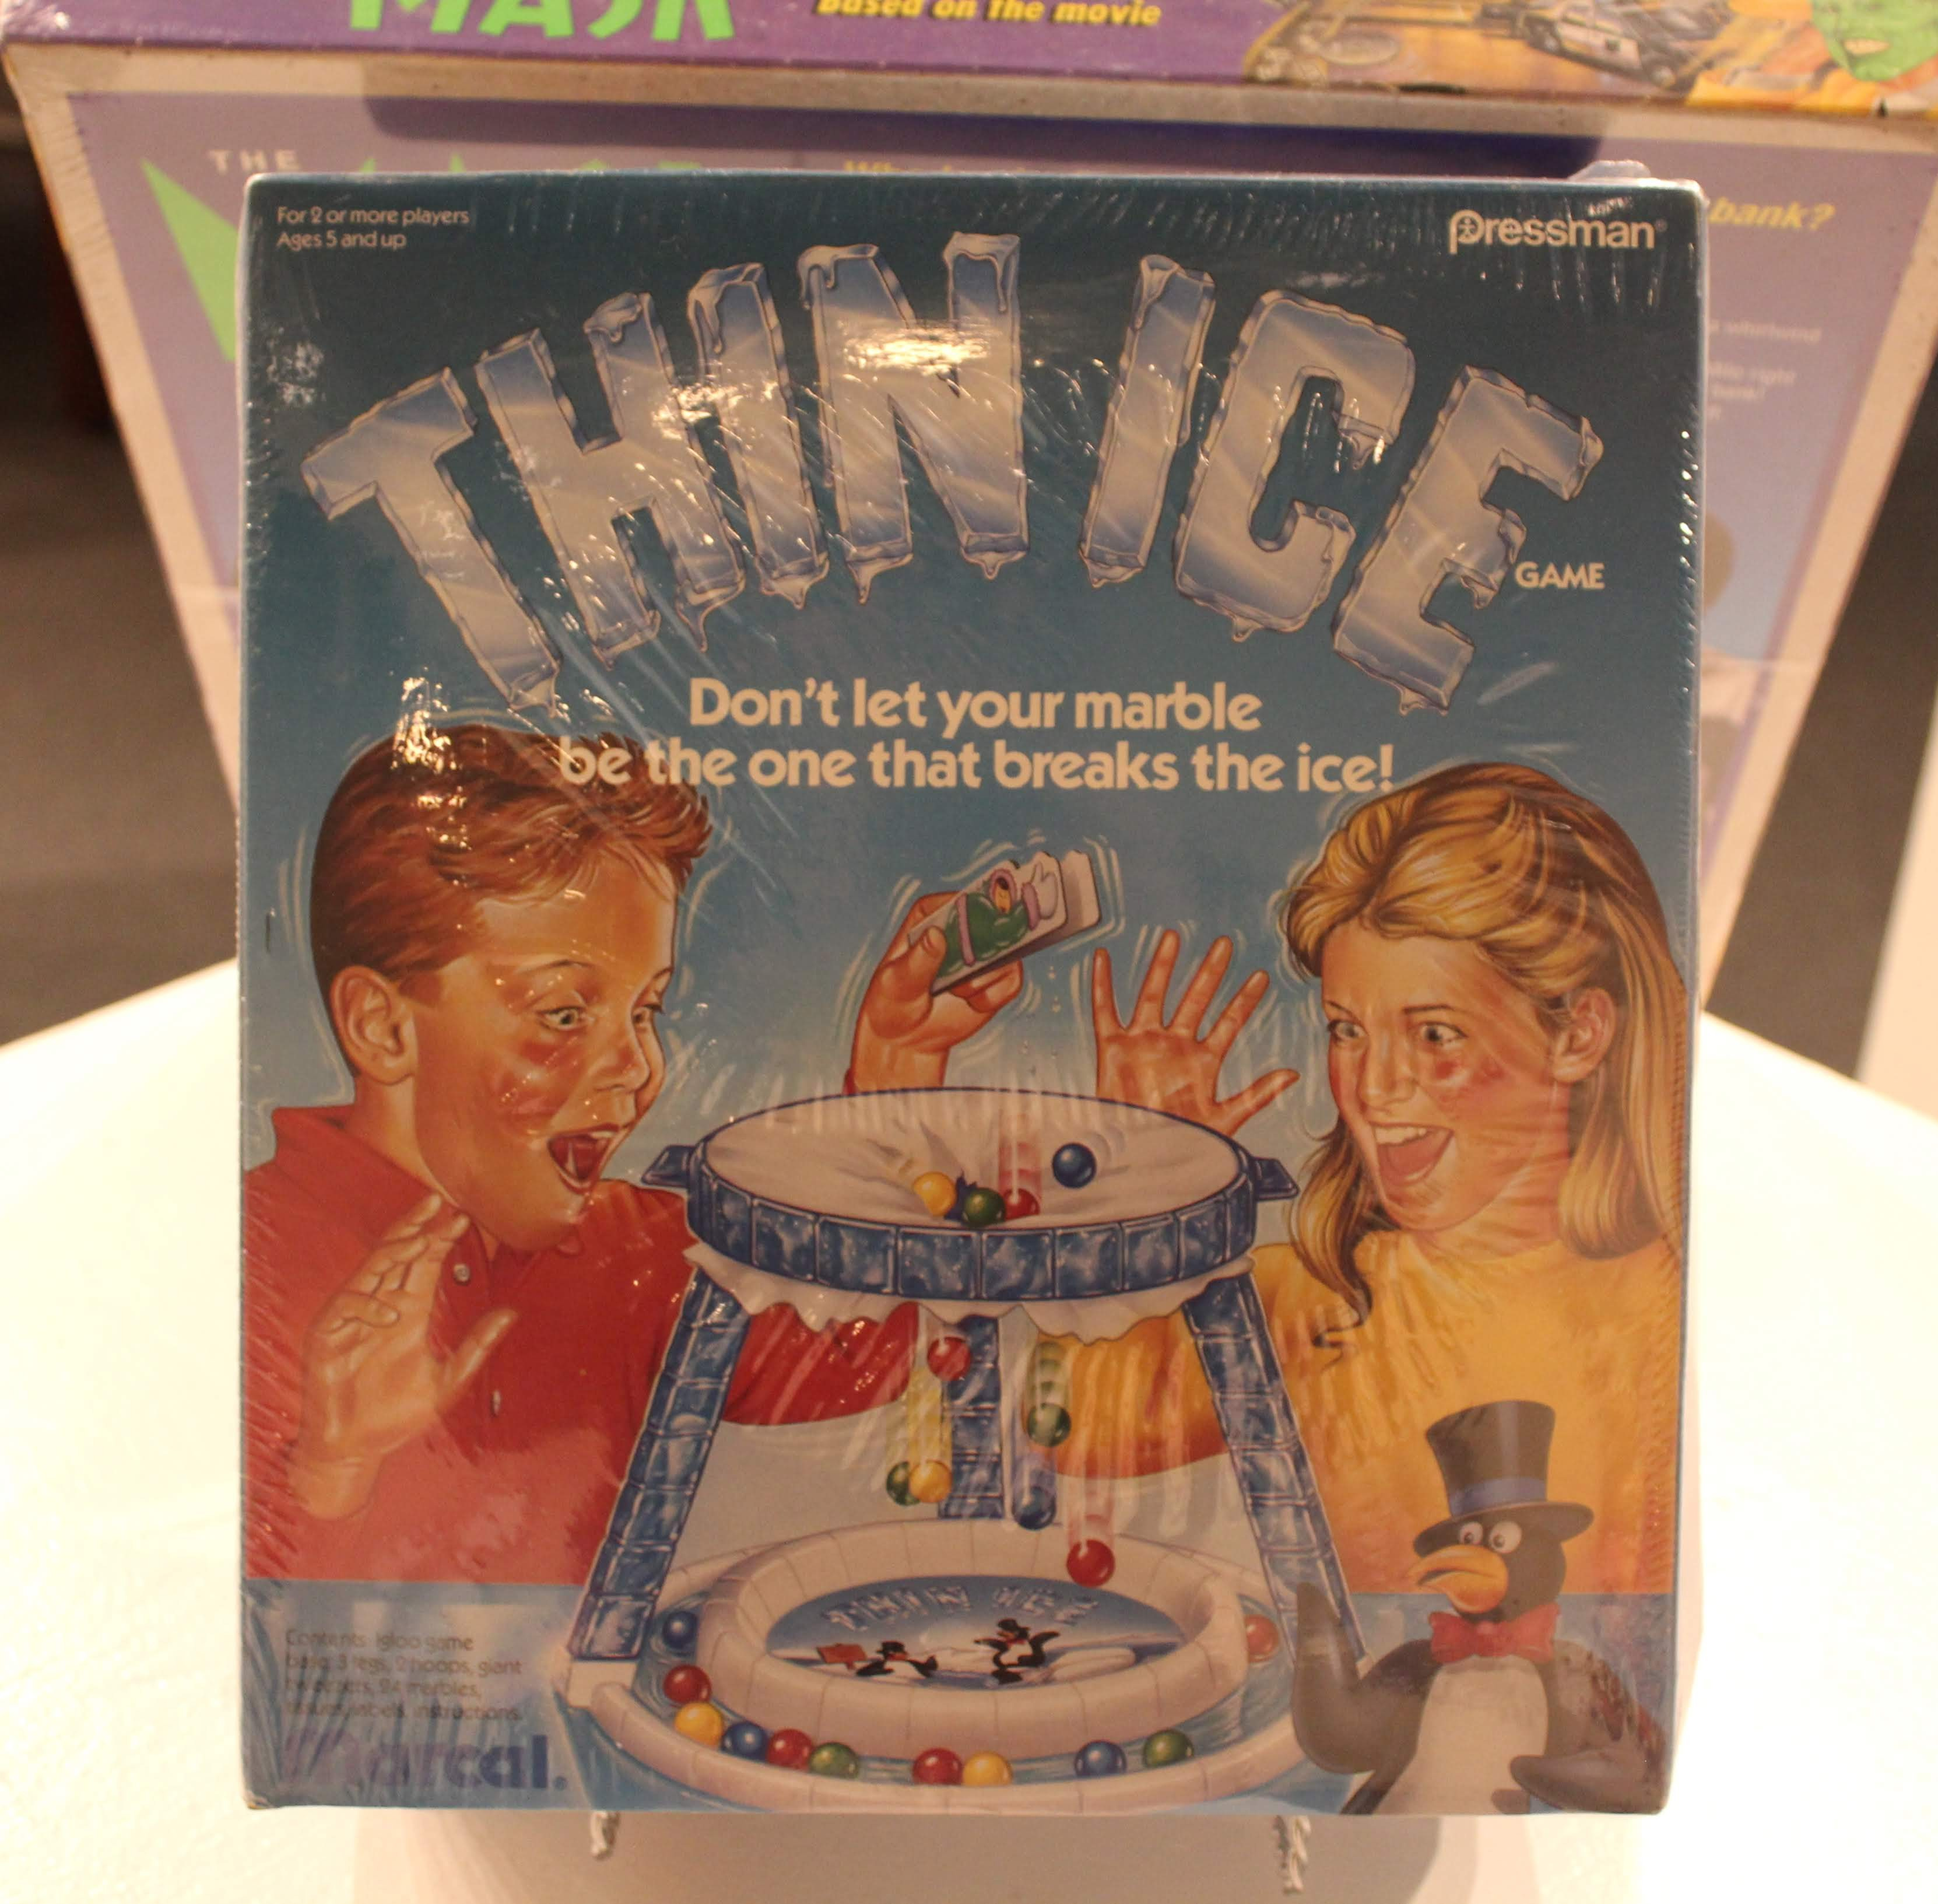 Image of Thin Ice board game artwork